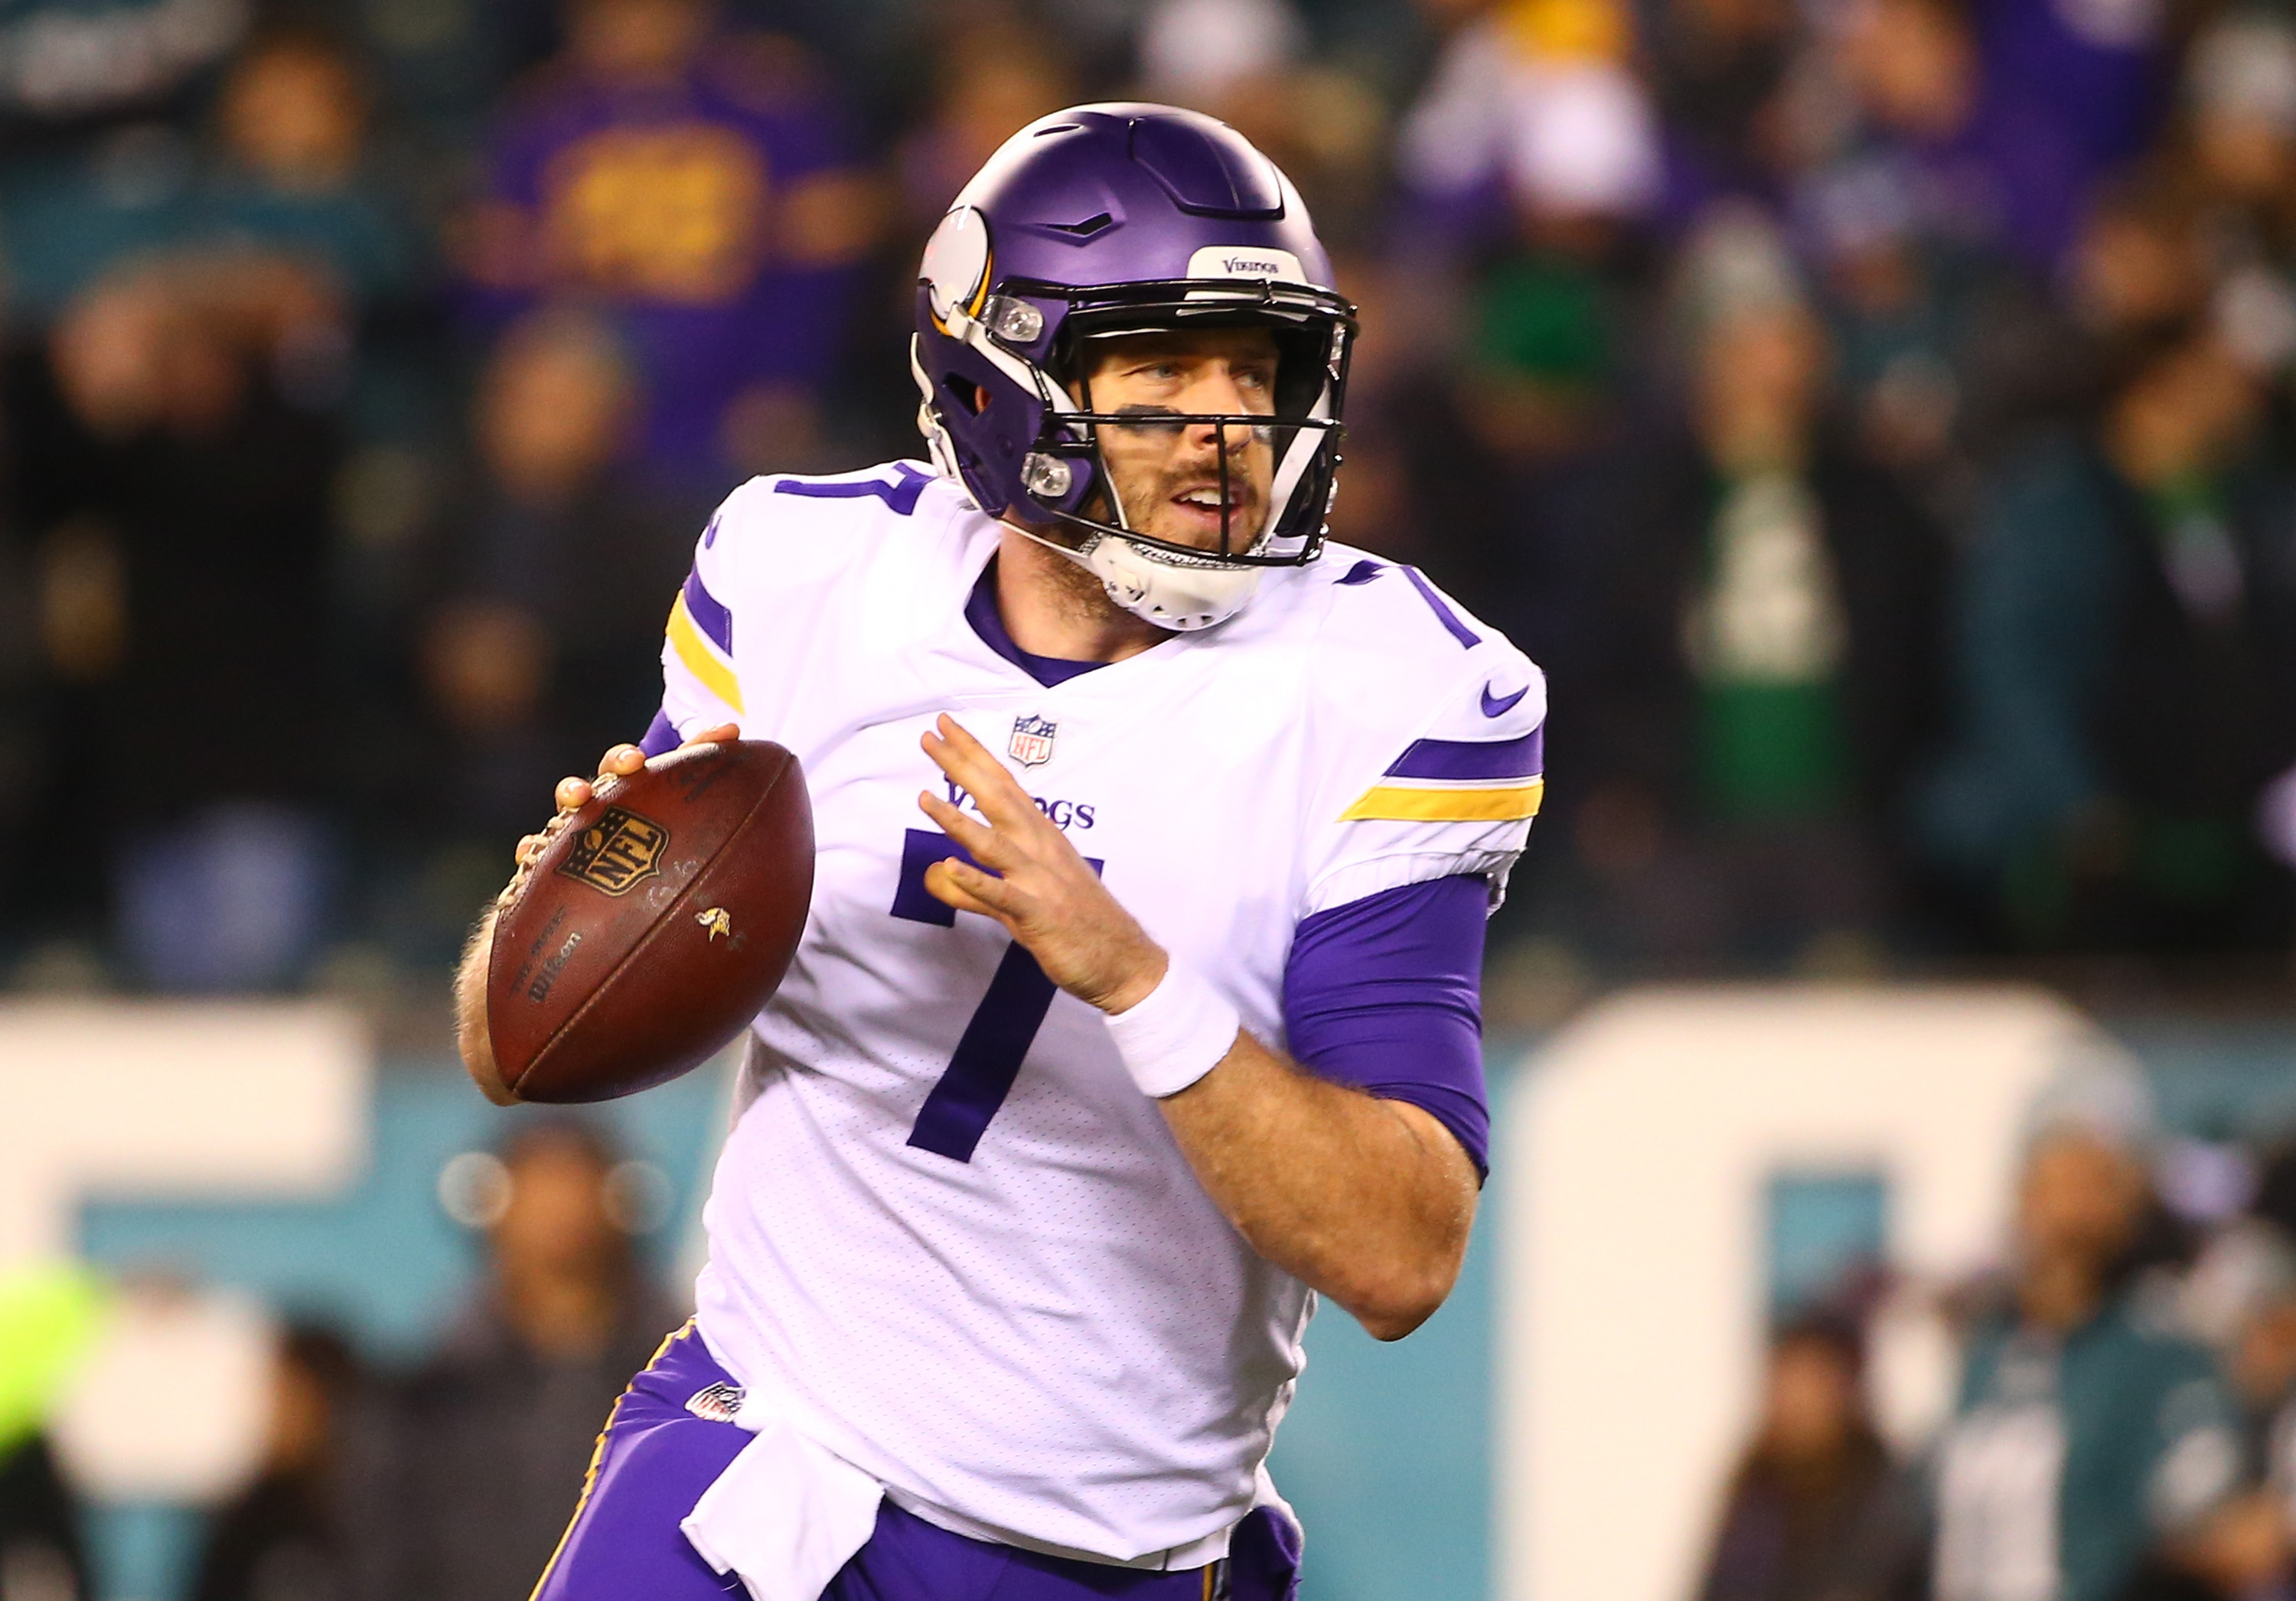 Philadelphia Eagles Team 2017 >> Who will the be the Minnesota Vikings' starting quarterback in 2018? - Page 3